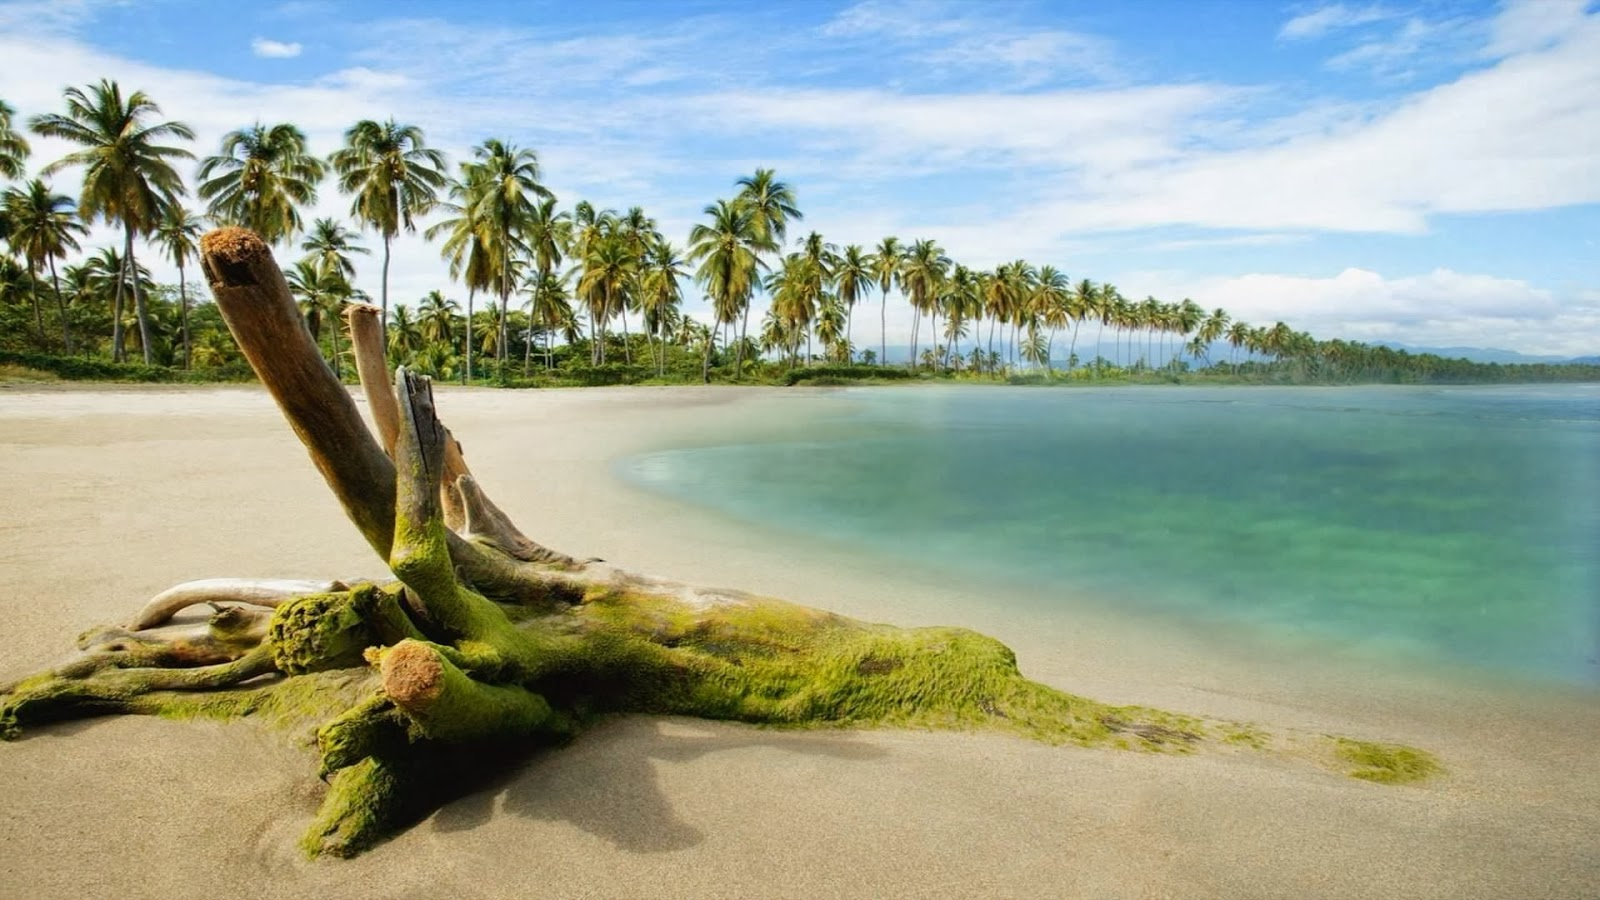 Beach Nature HD Wallpapers 1080p Widescreen   HD 1600x900